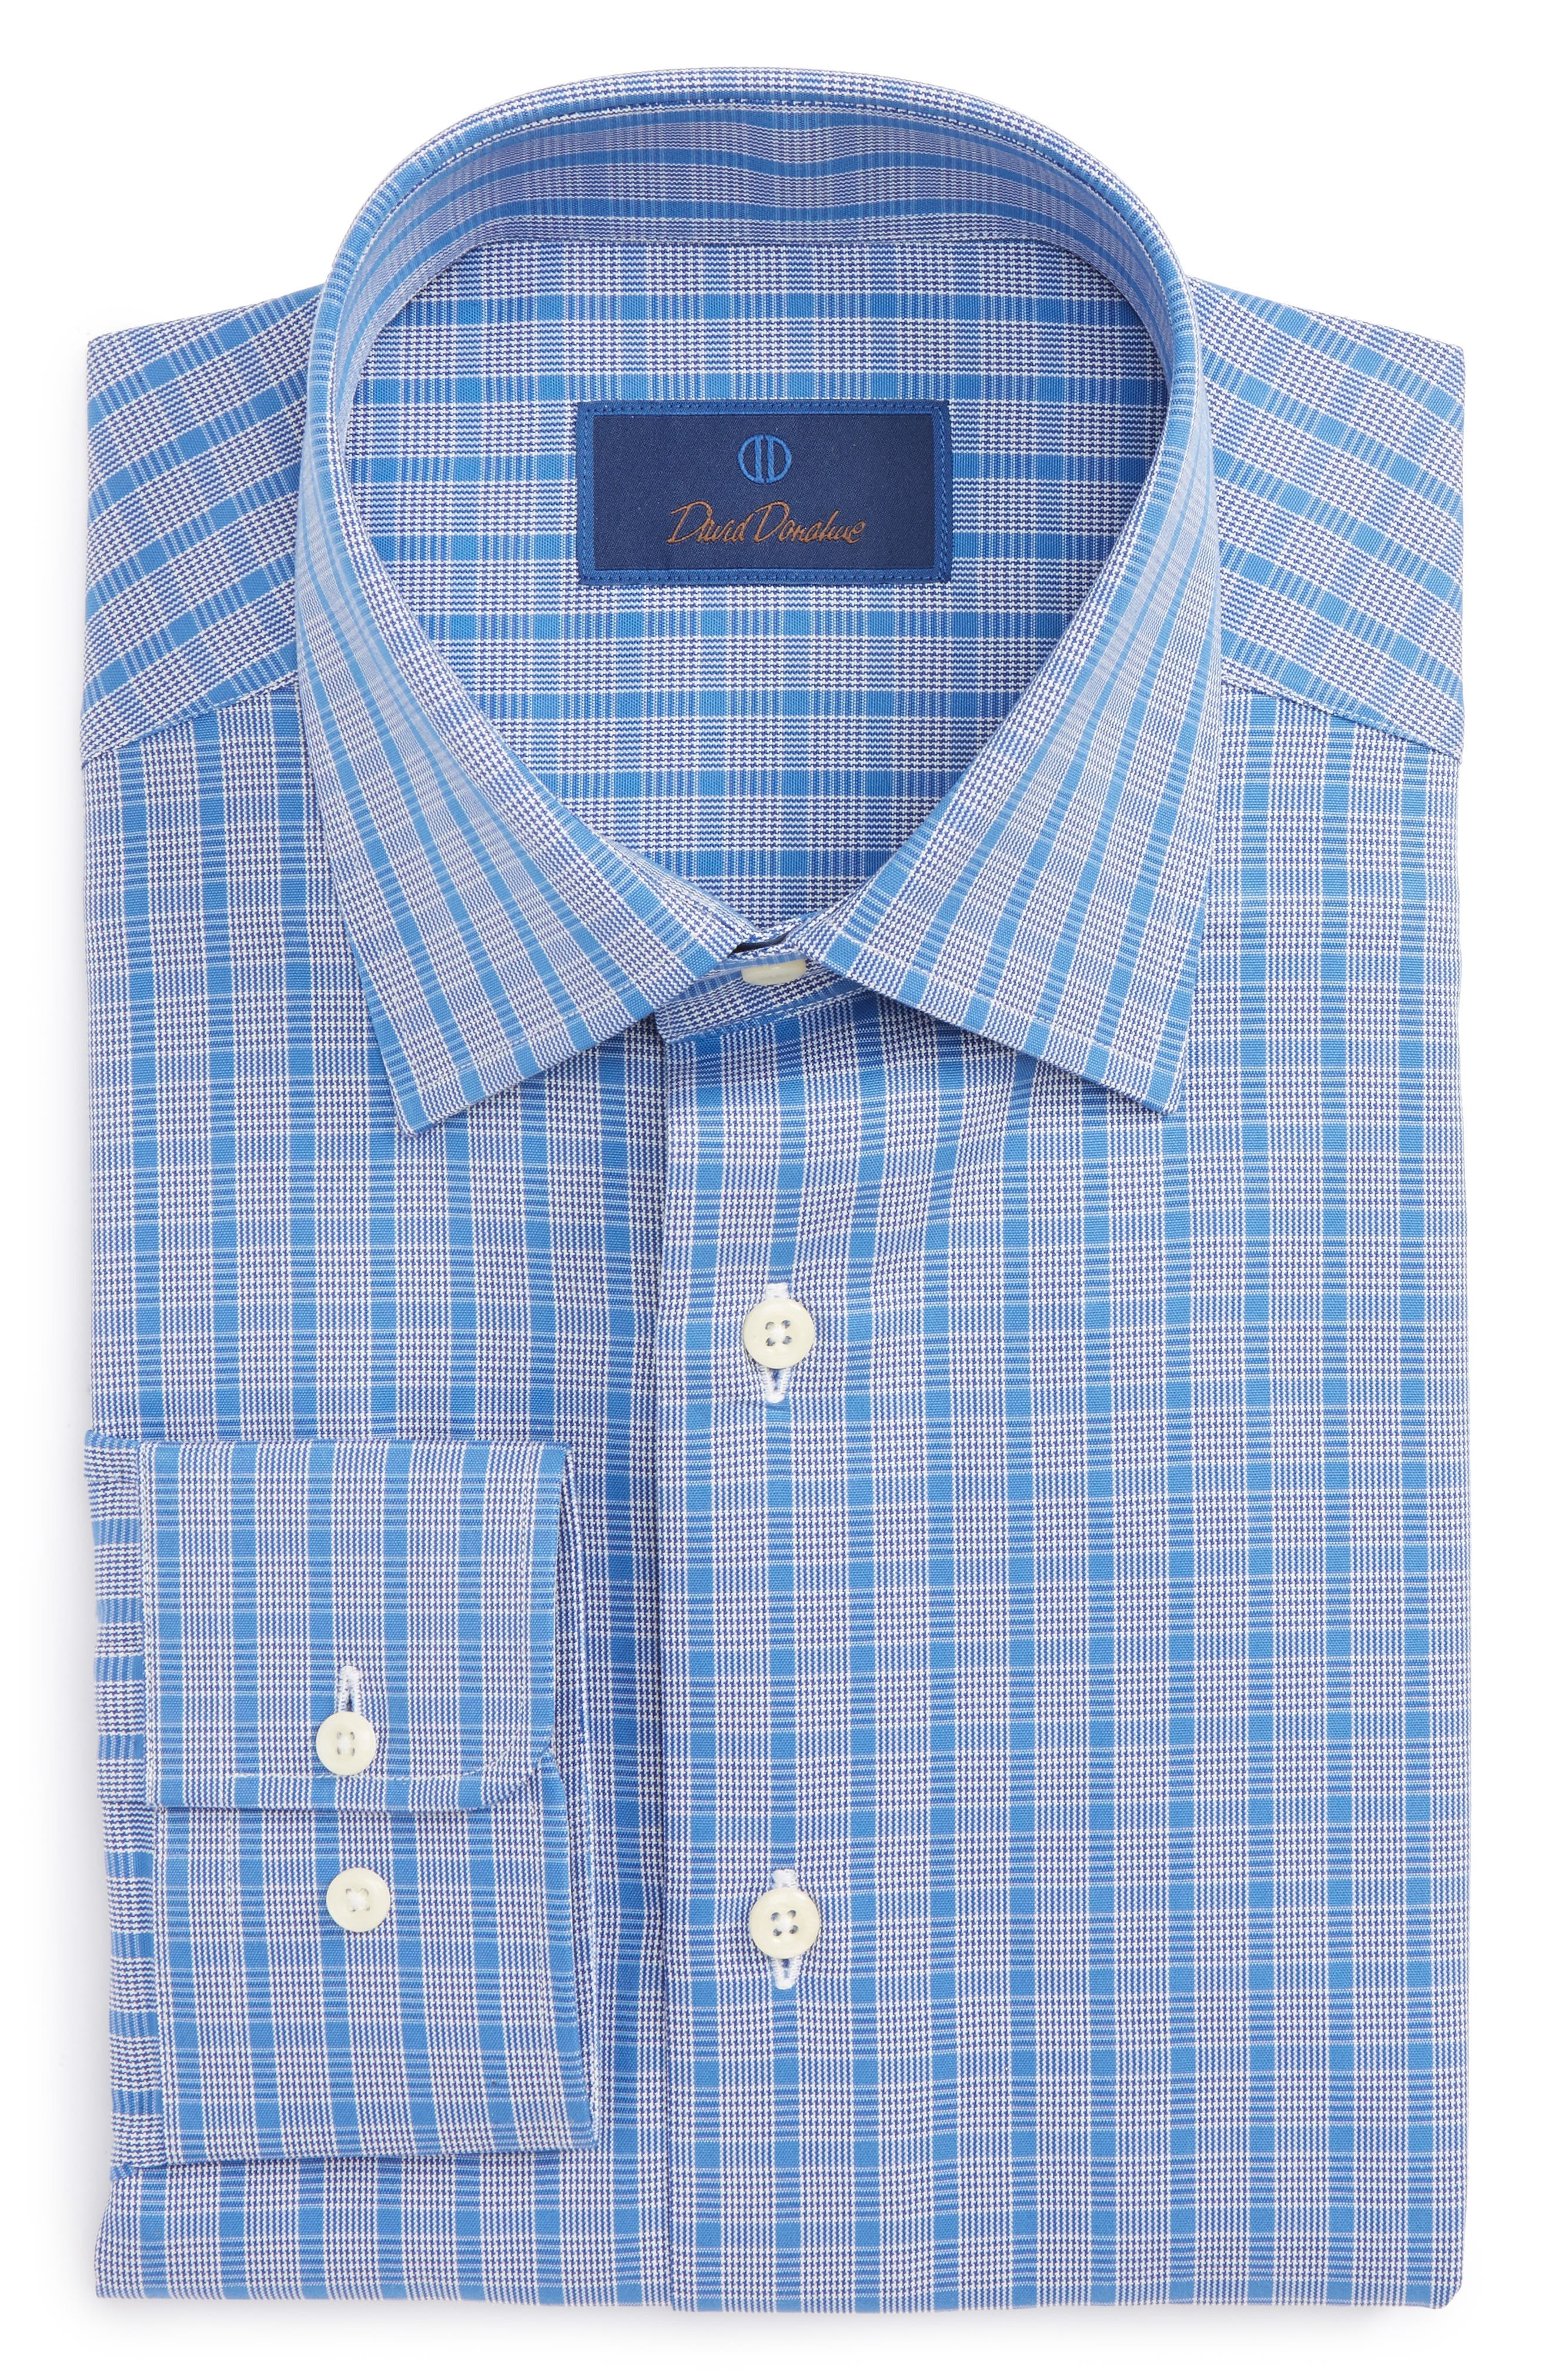 Alternate Image 1 Selected - David Donahue Regular Fit Plaid Dress Shirt